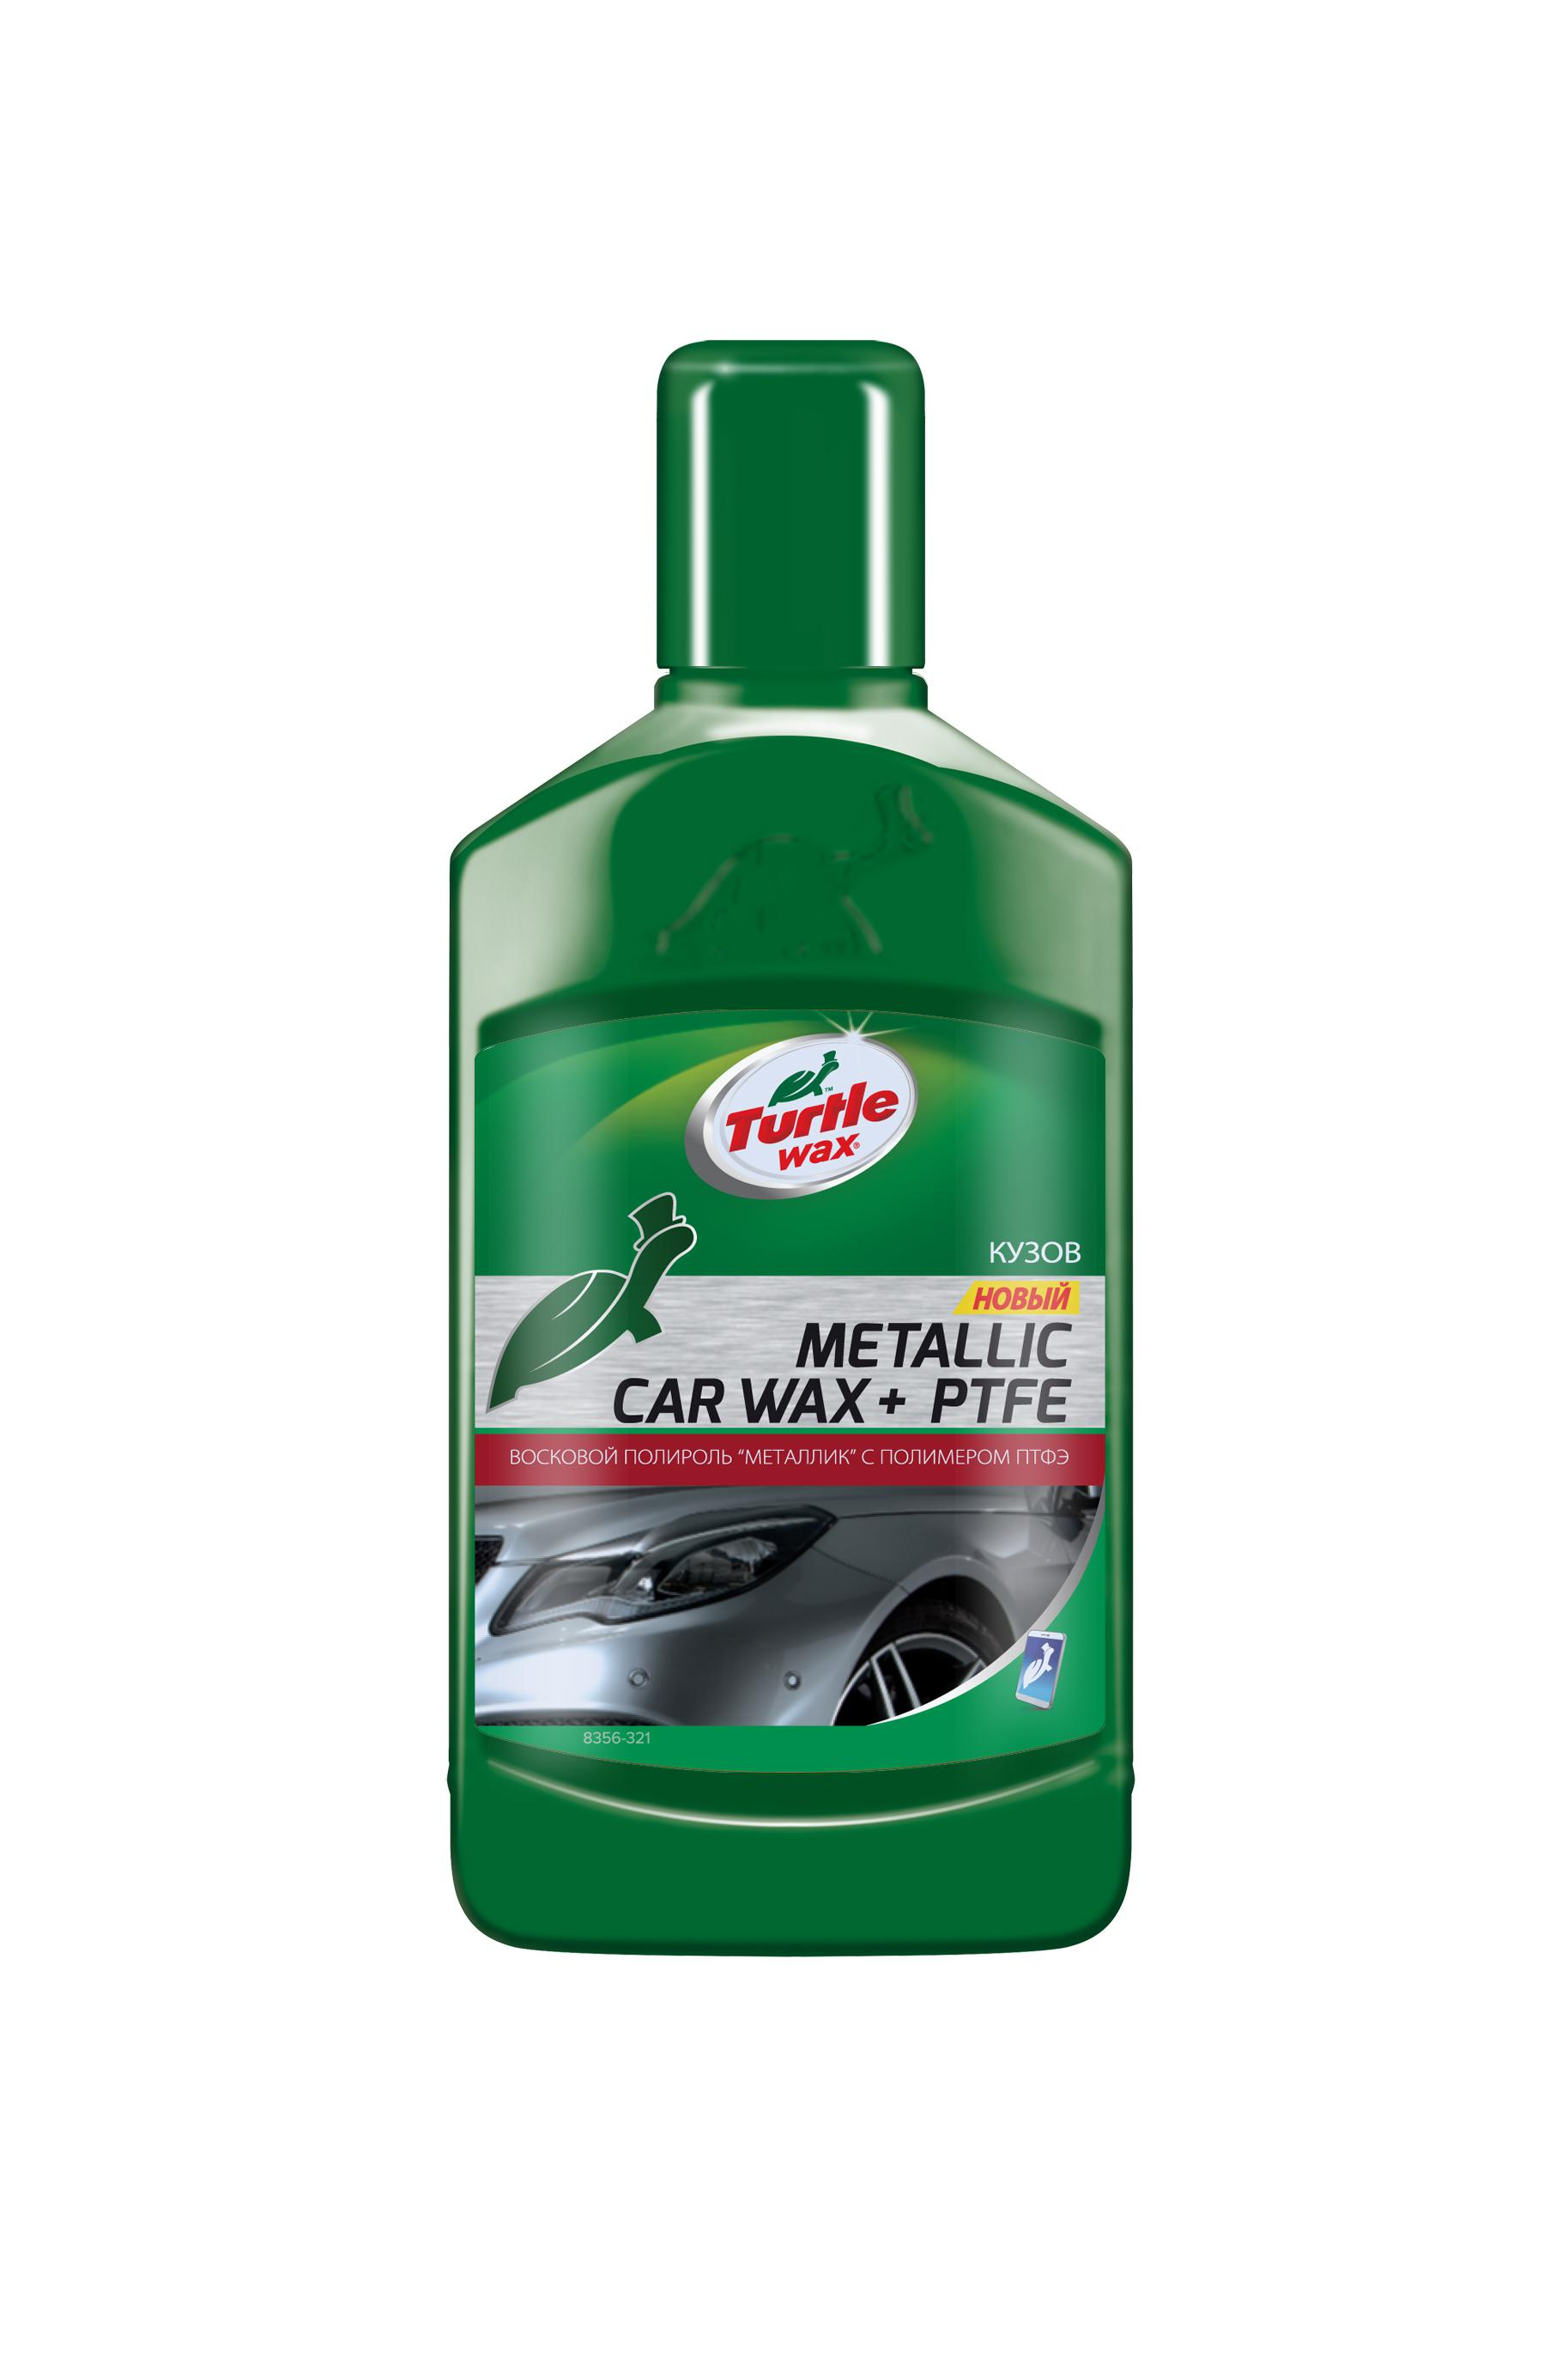 Полироль Turtle wax Ptfe car wax metallic + ptfe 500мл